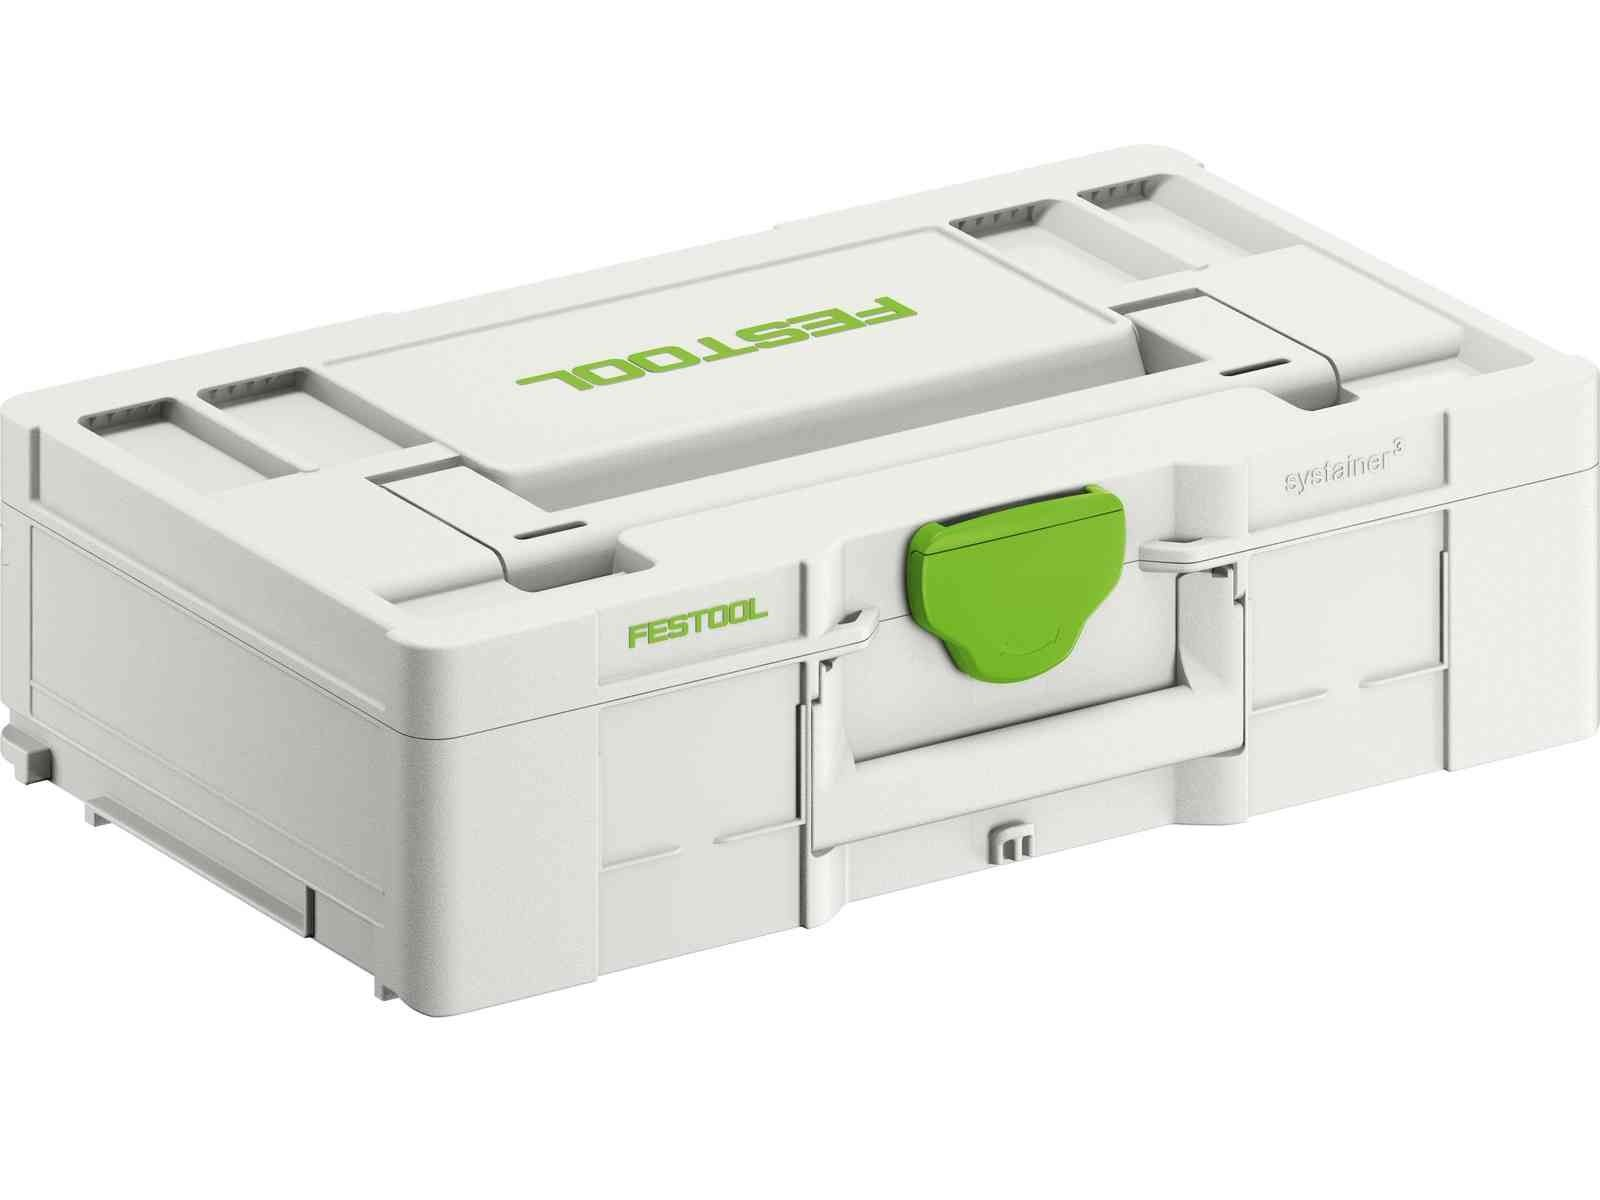 Kufr Systainer Festool Systainer³ SYS3 L 137 (204846)